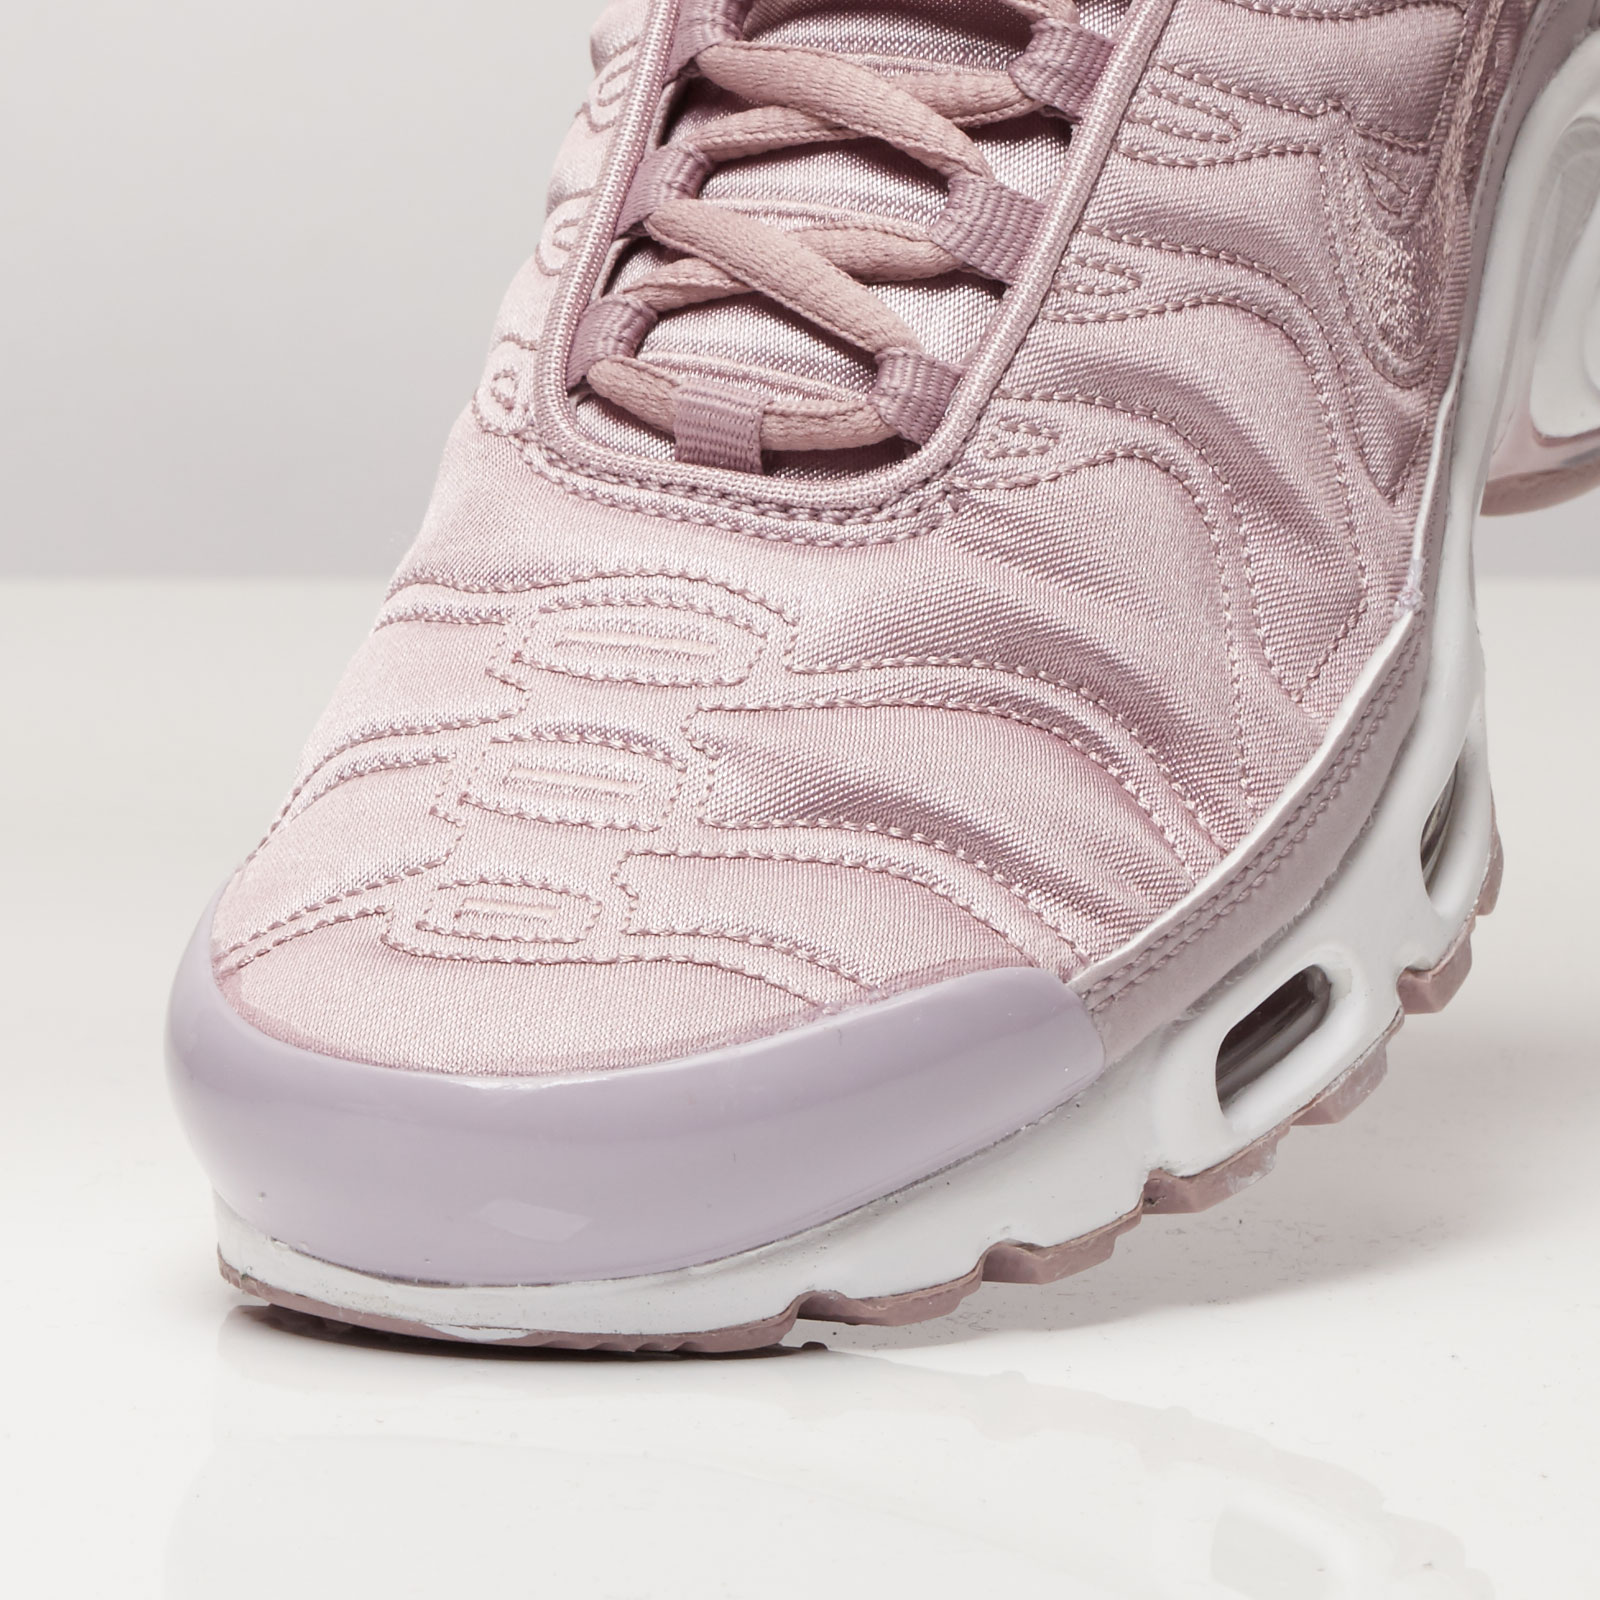 outlet store 9f8a5 2312e Nike Wmns Air Max Plus SE - 6. Close